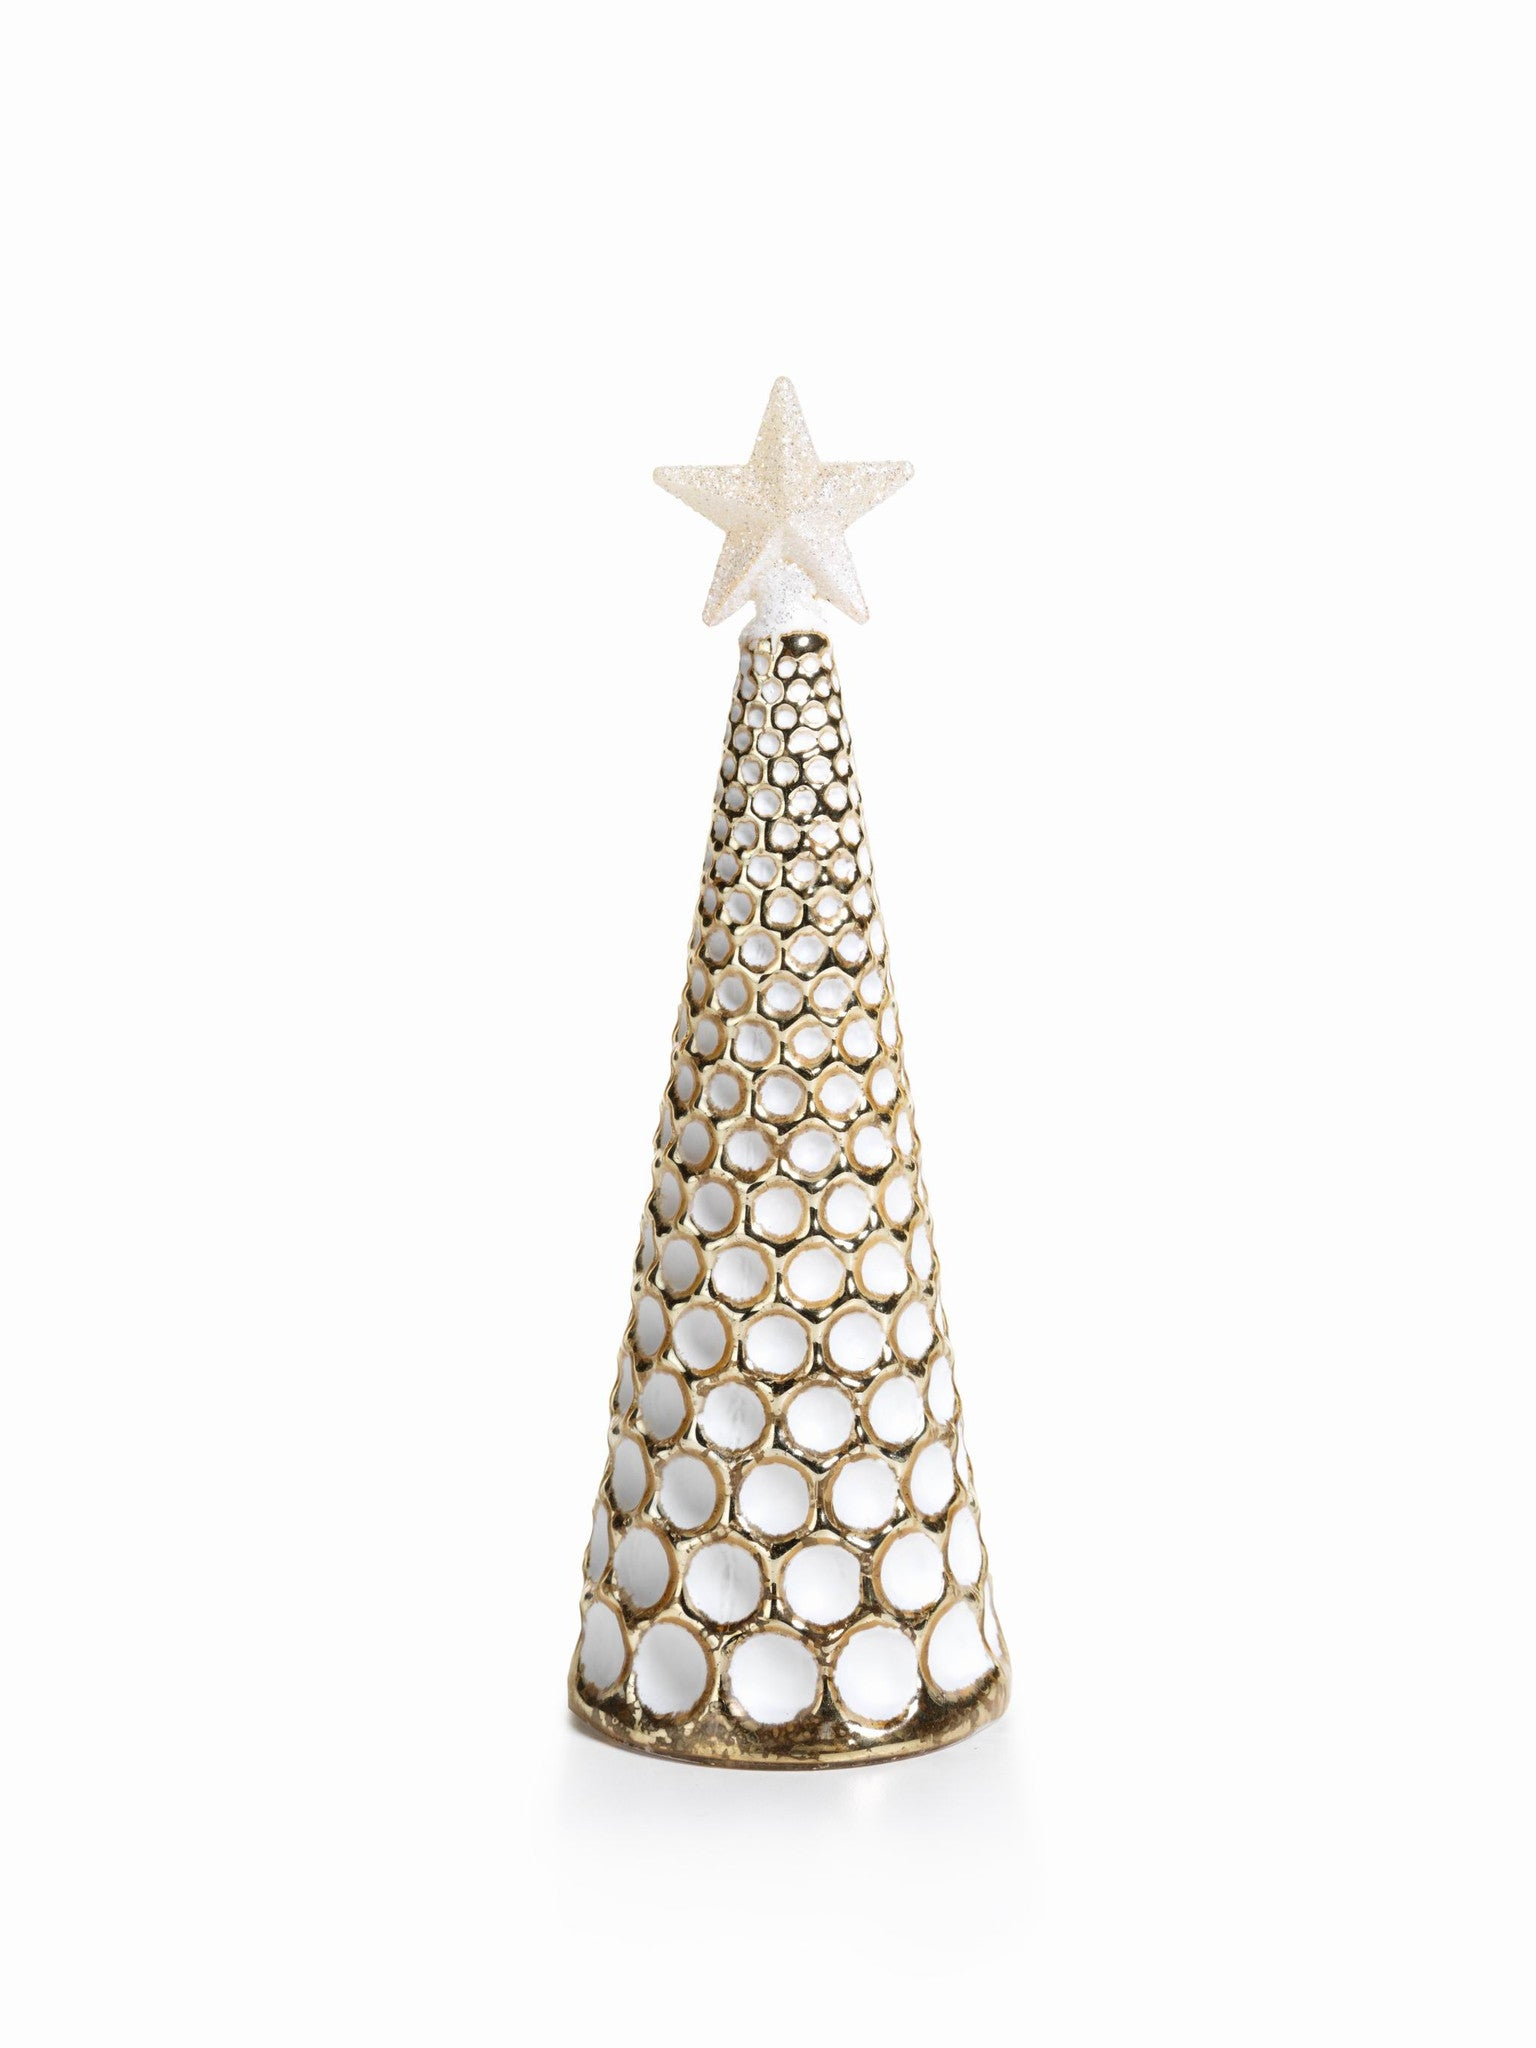 LED Glass Decorative Tree - Gold - Set of 6 - Large / Dimple Cut - CARLYLE AVENUE - 17